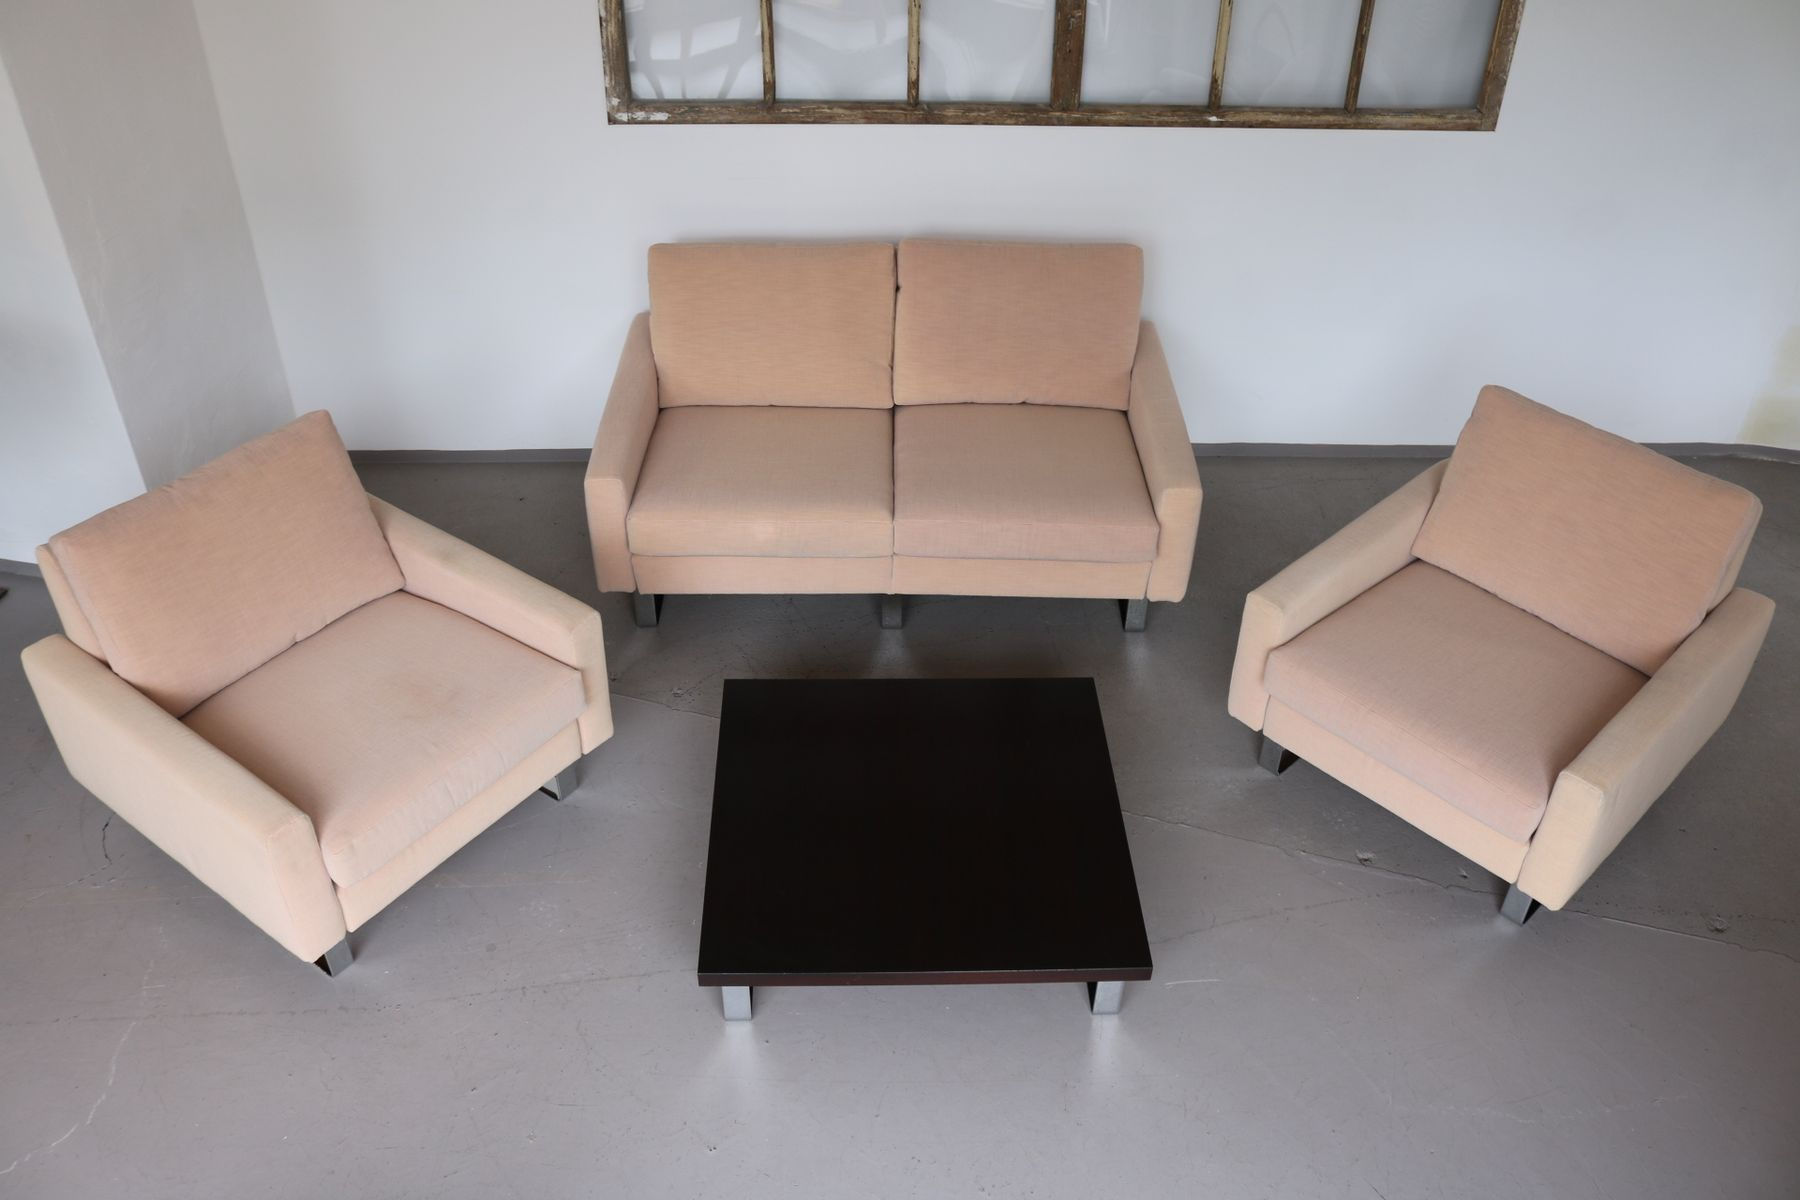 Conseta Lounge Chairs Sofa & Table by F W Möller for Cor 1960s